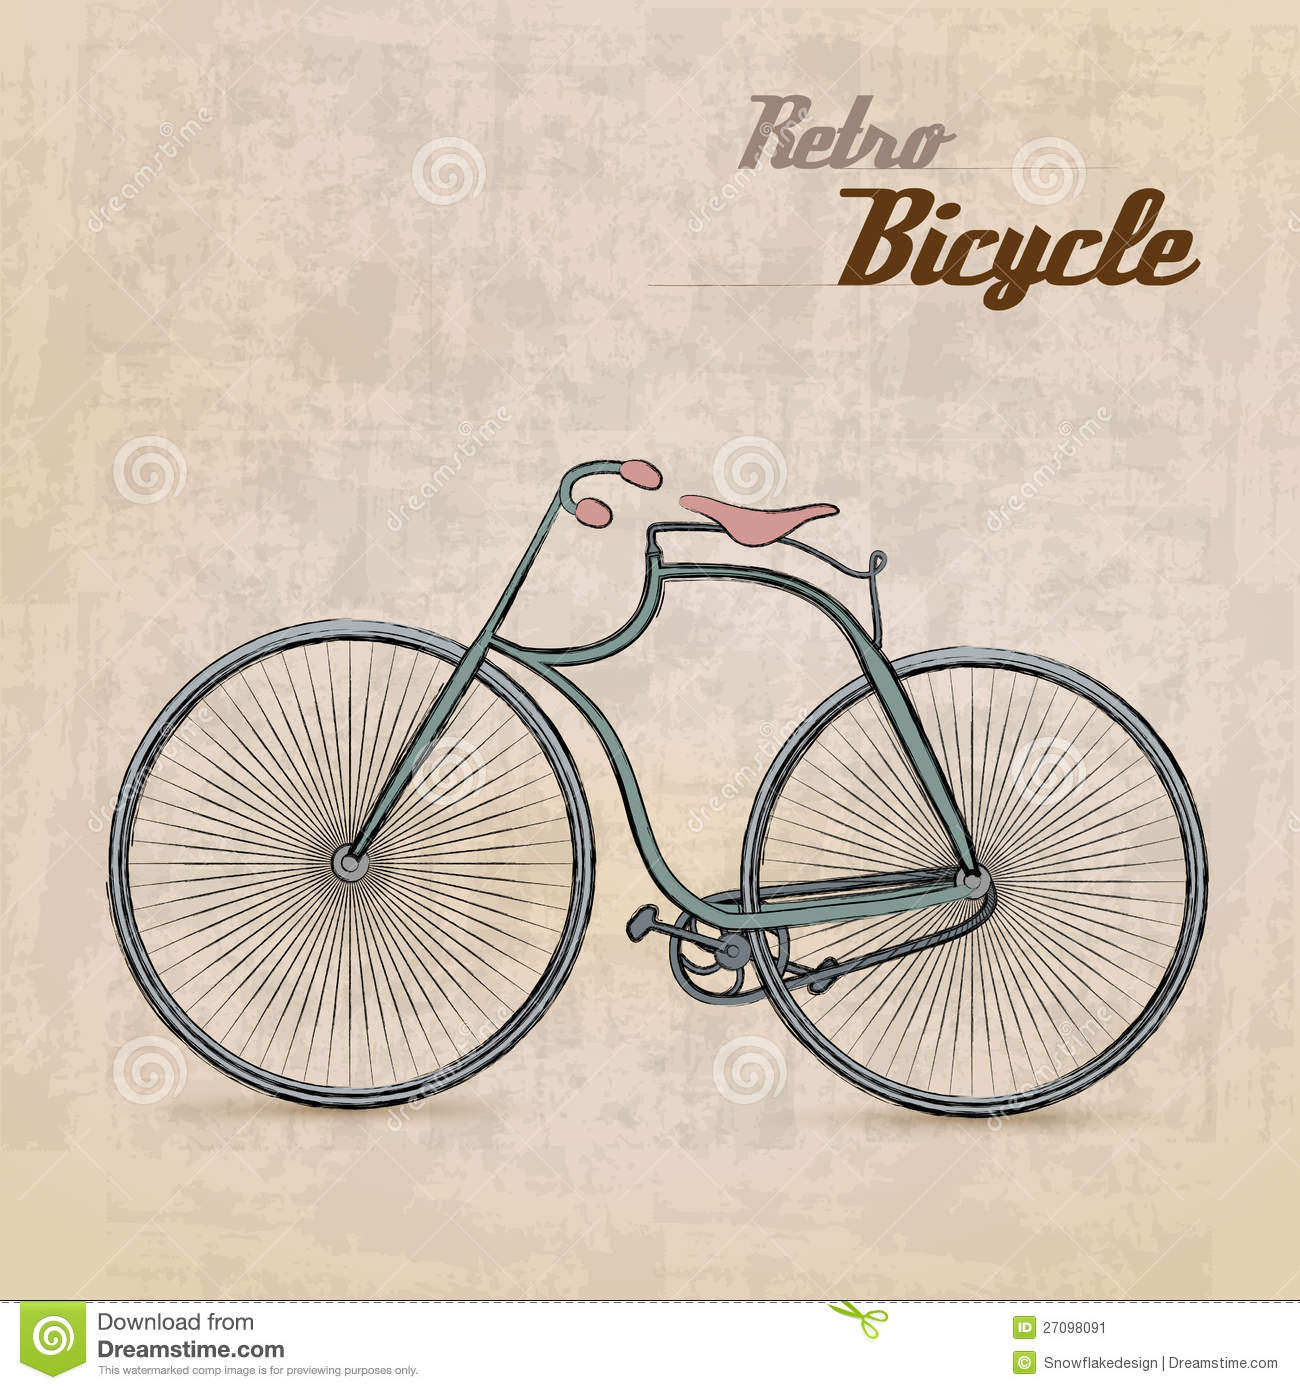 Vintage retro bicycle stock vector illustration of - Retro vintage ...